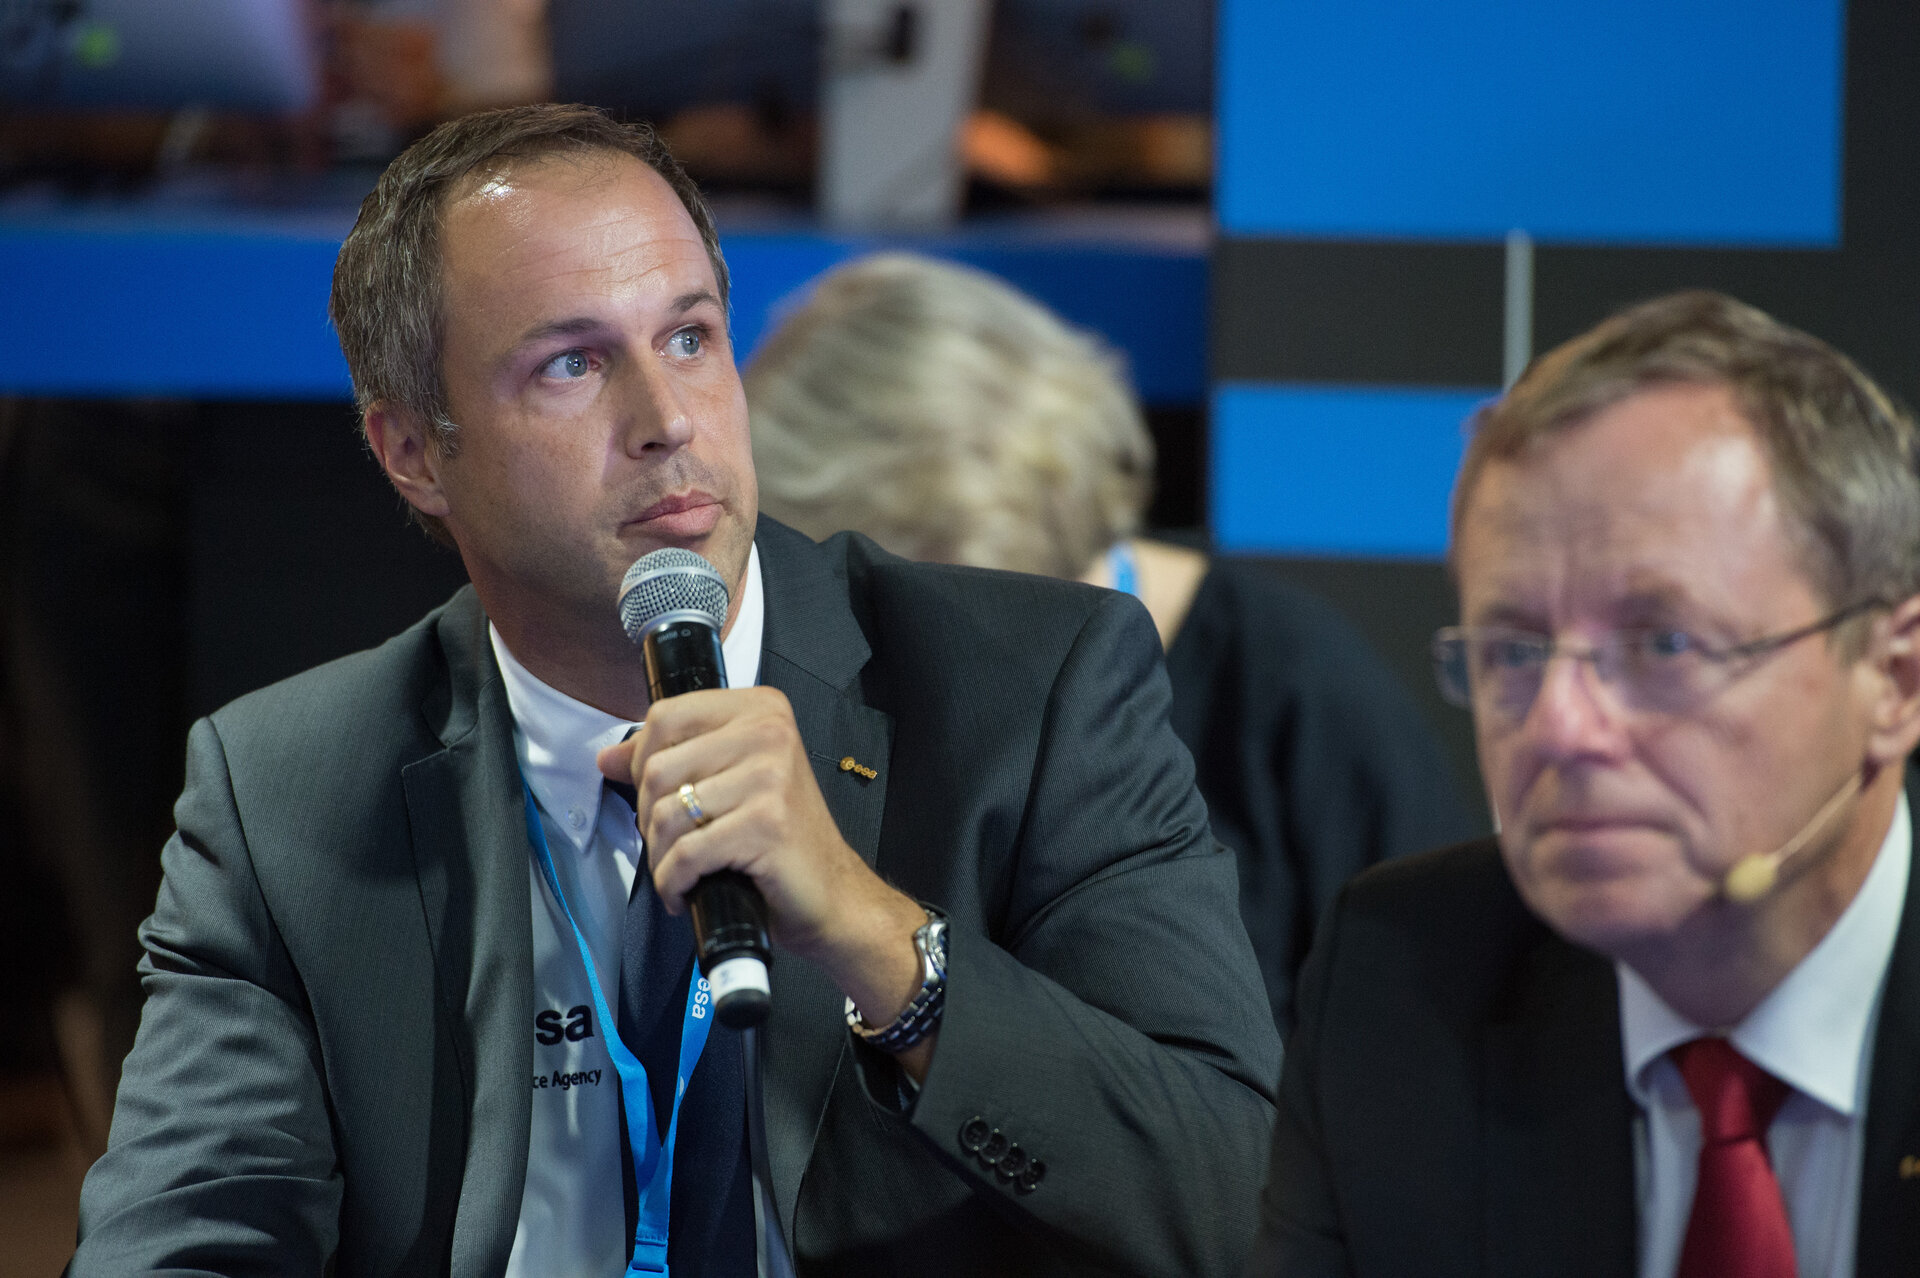 Daniel Neuenschwander during an interaction with media on 'Space 4.0'